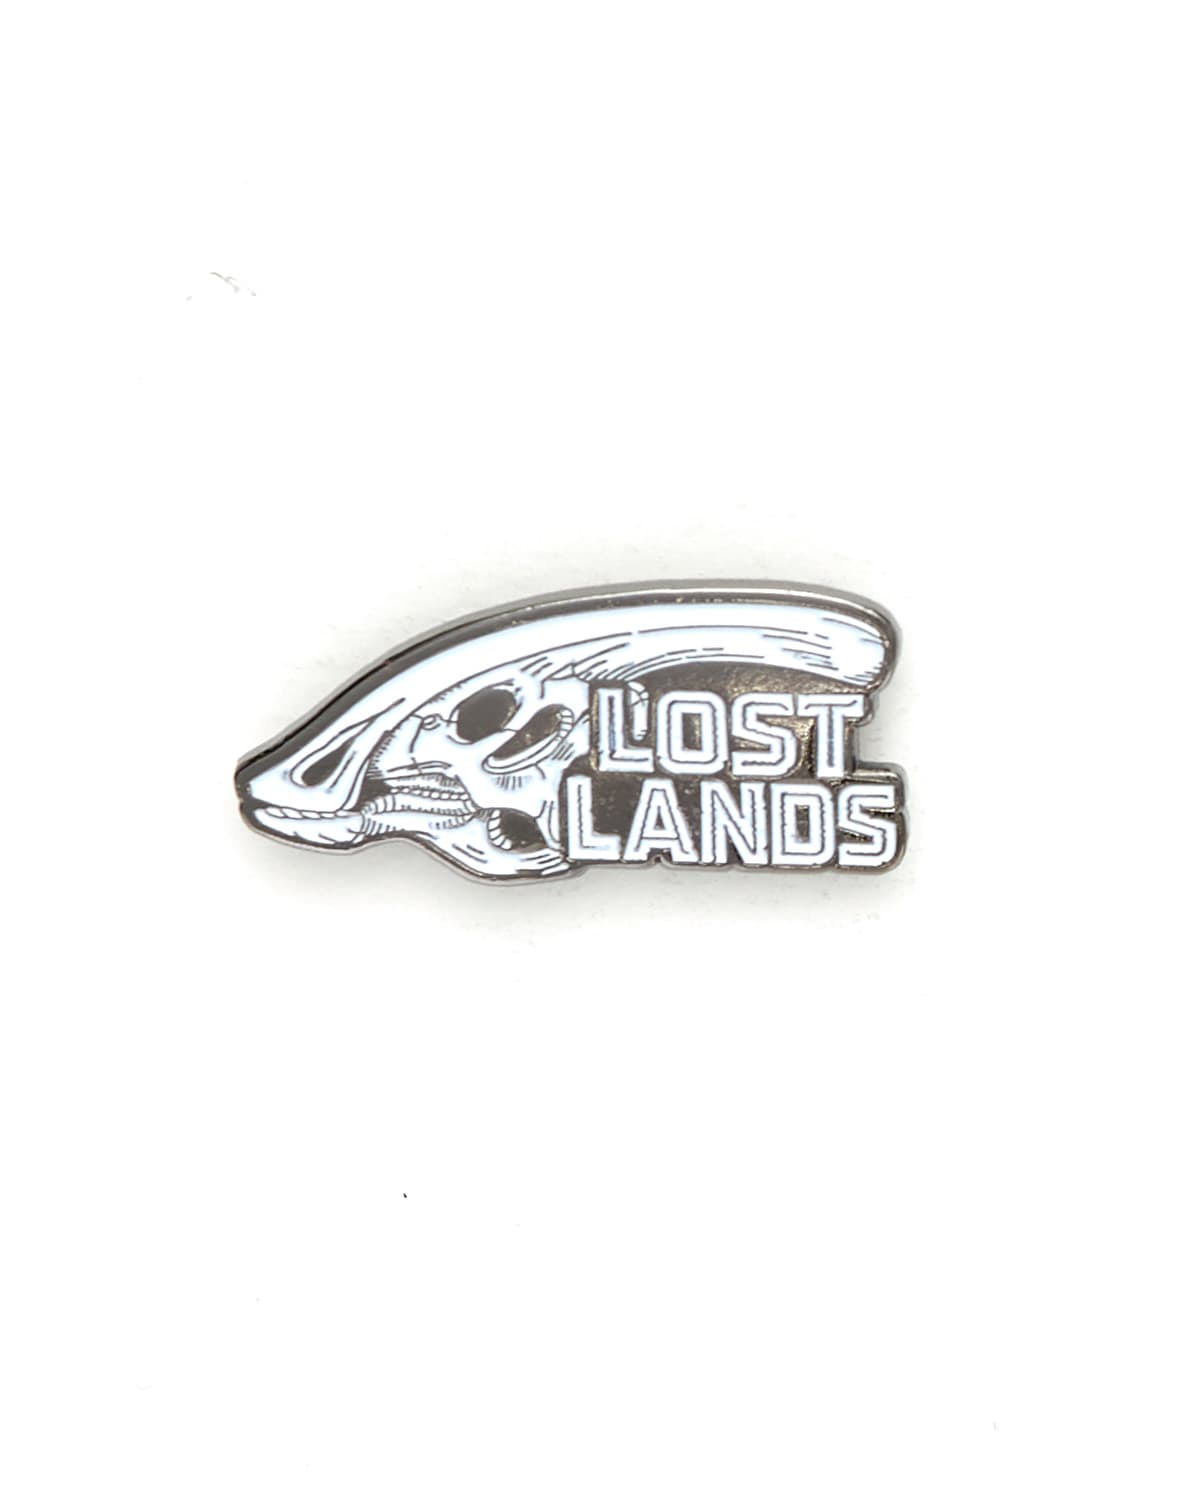 Lost Lands 'Parasaurolophus' Enamel Pin - White